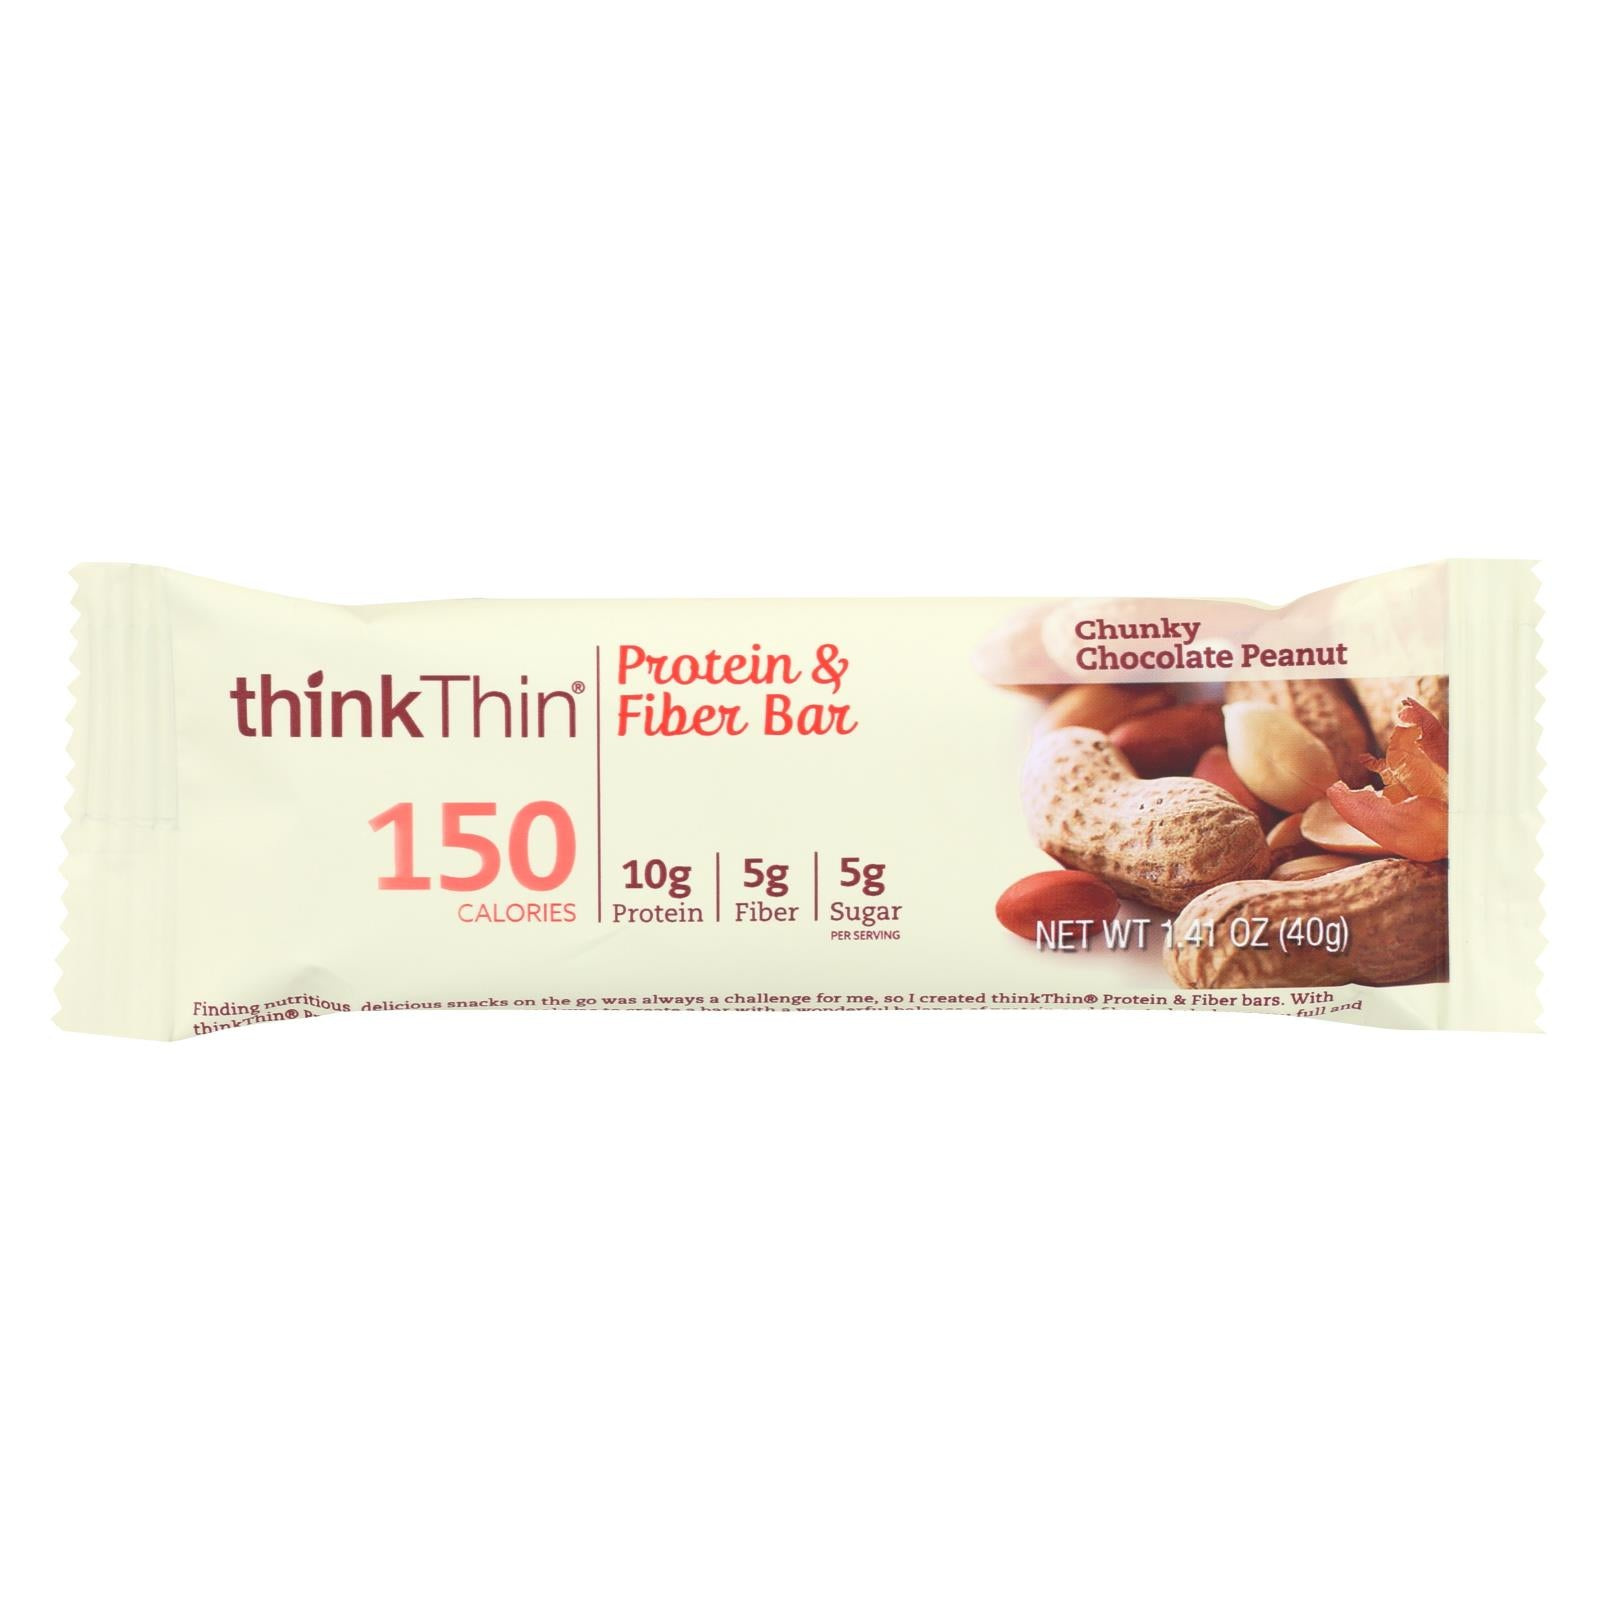 Think Products Thinkthin Bar - Lean Protein Fiber - Chocolate Peanut - 1.41 Oz - 1 Case HG1536861